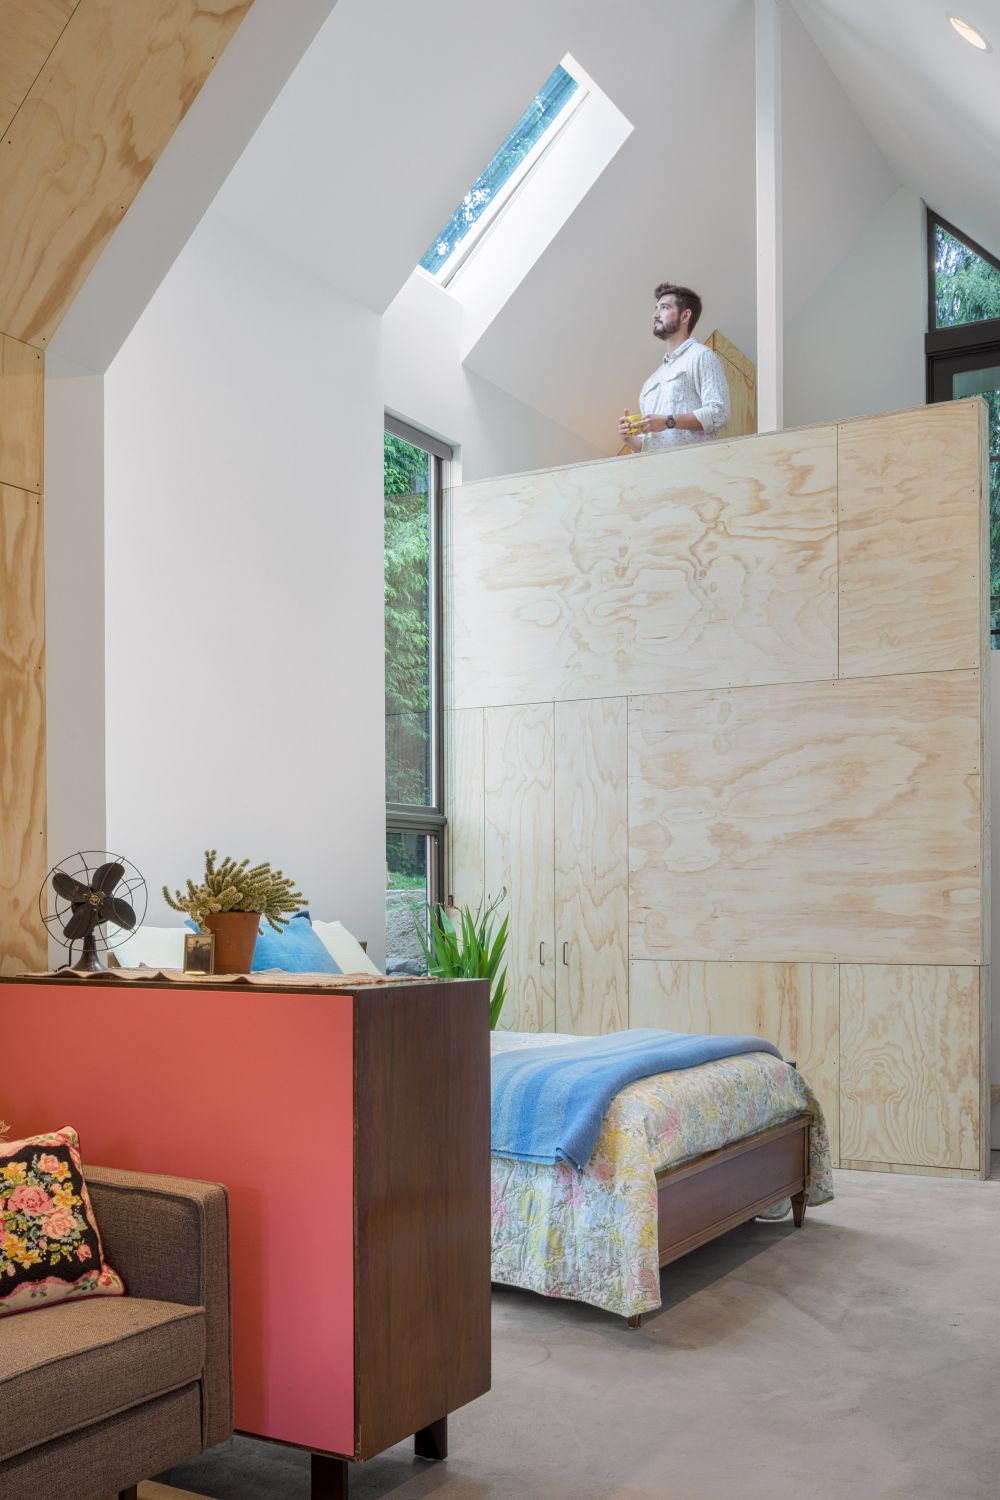 The sleeping area is not a separate space but is placed at the back of the house which gives it sufficient privacy